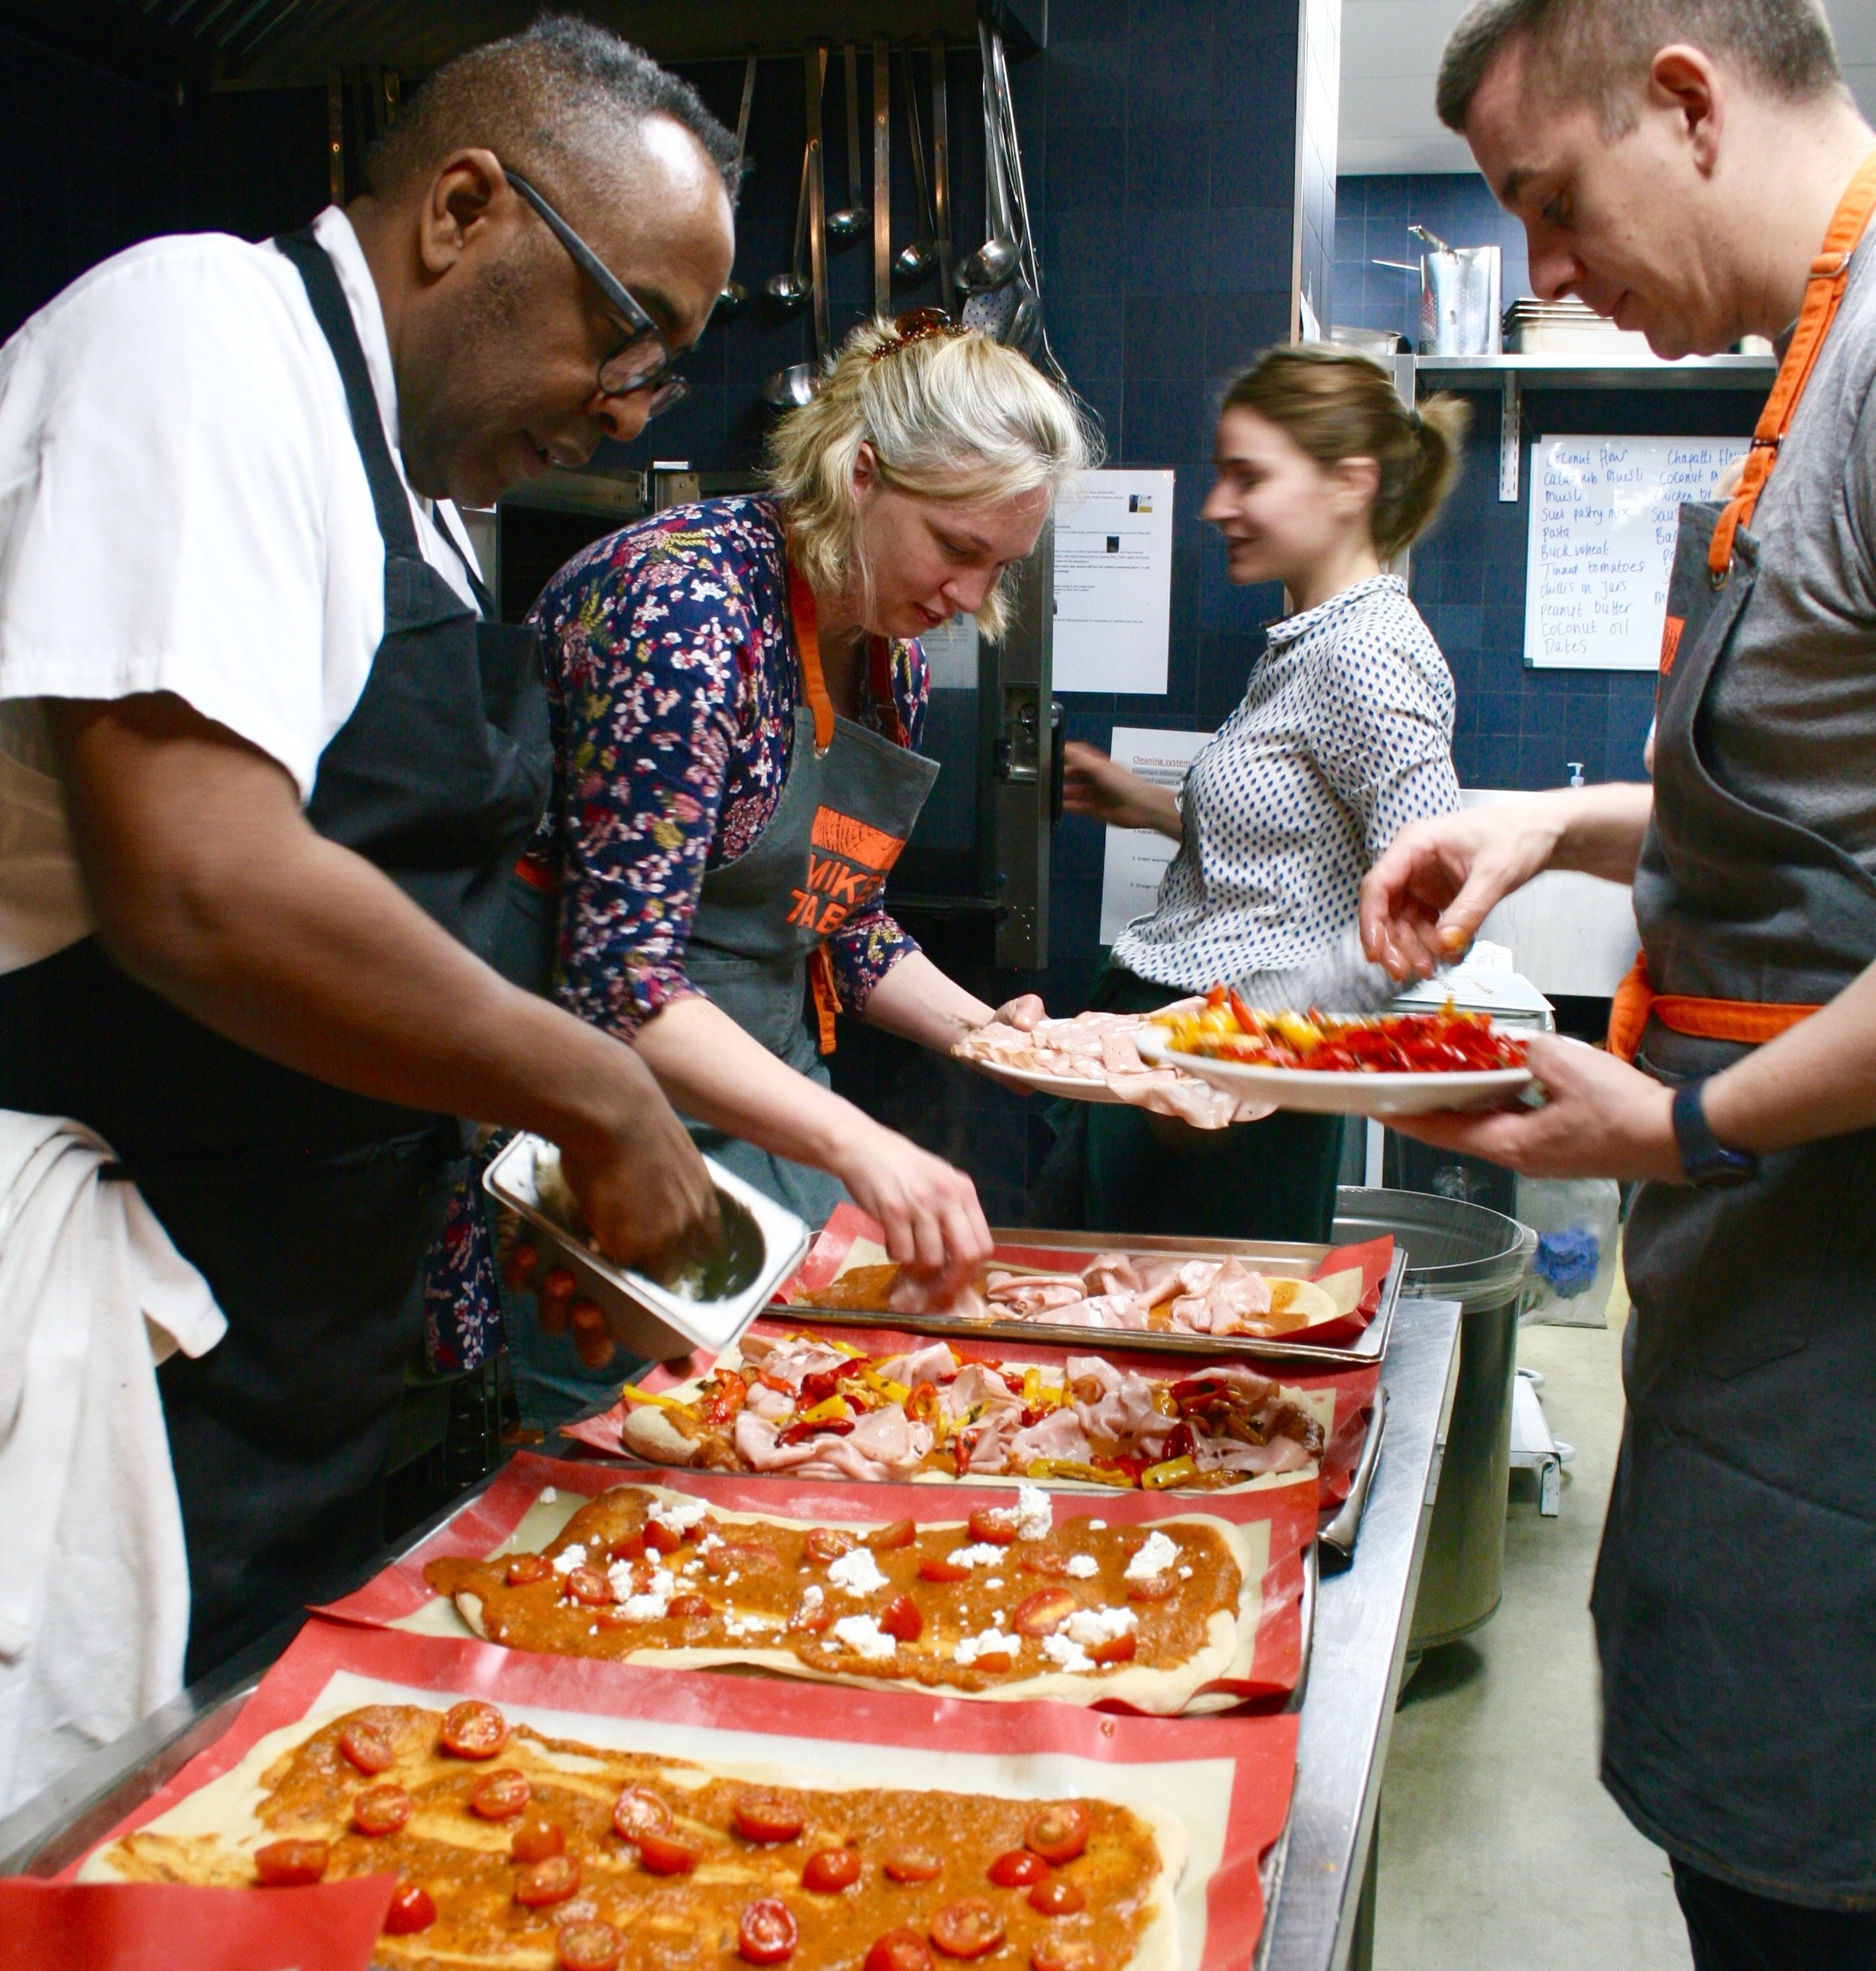 Pizza Making IMG_6573.jpg